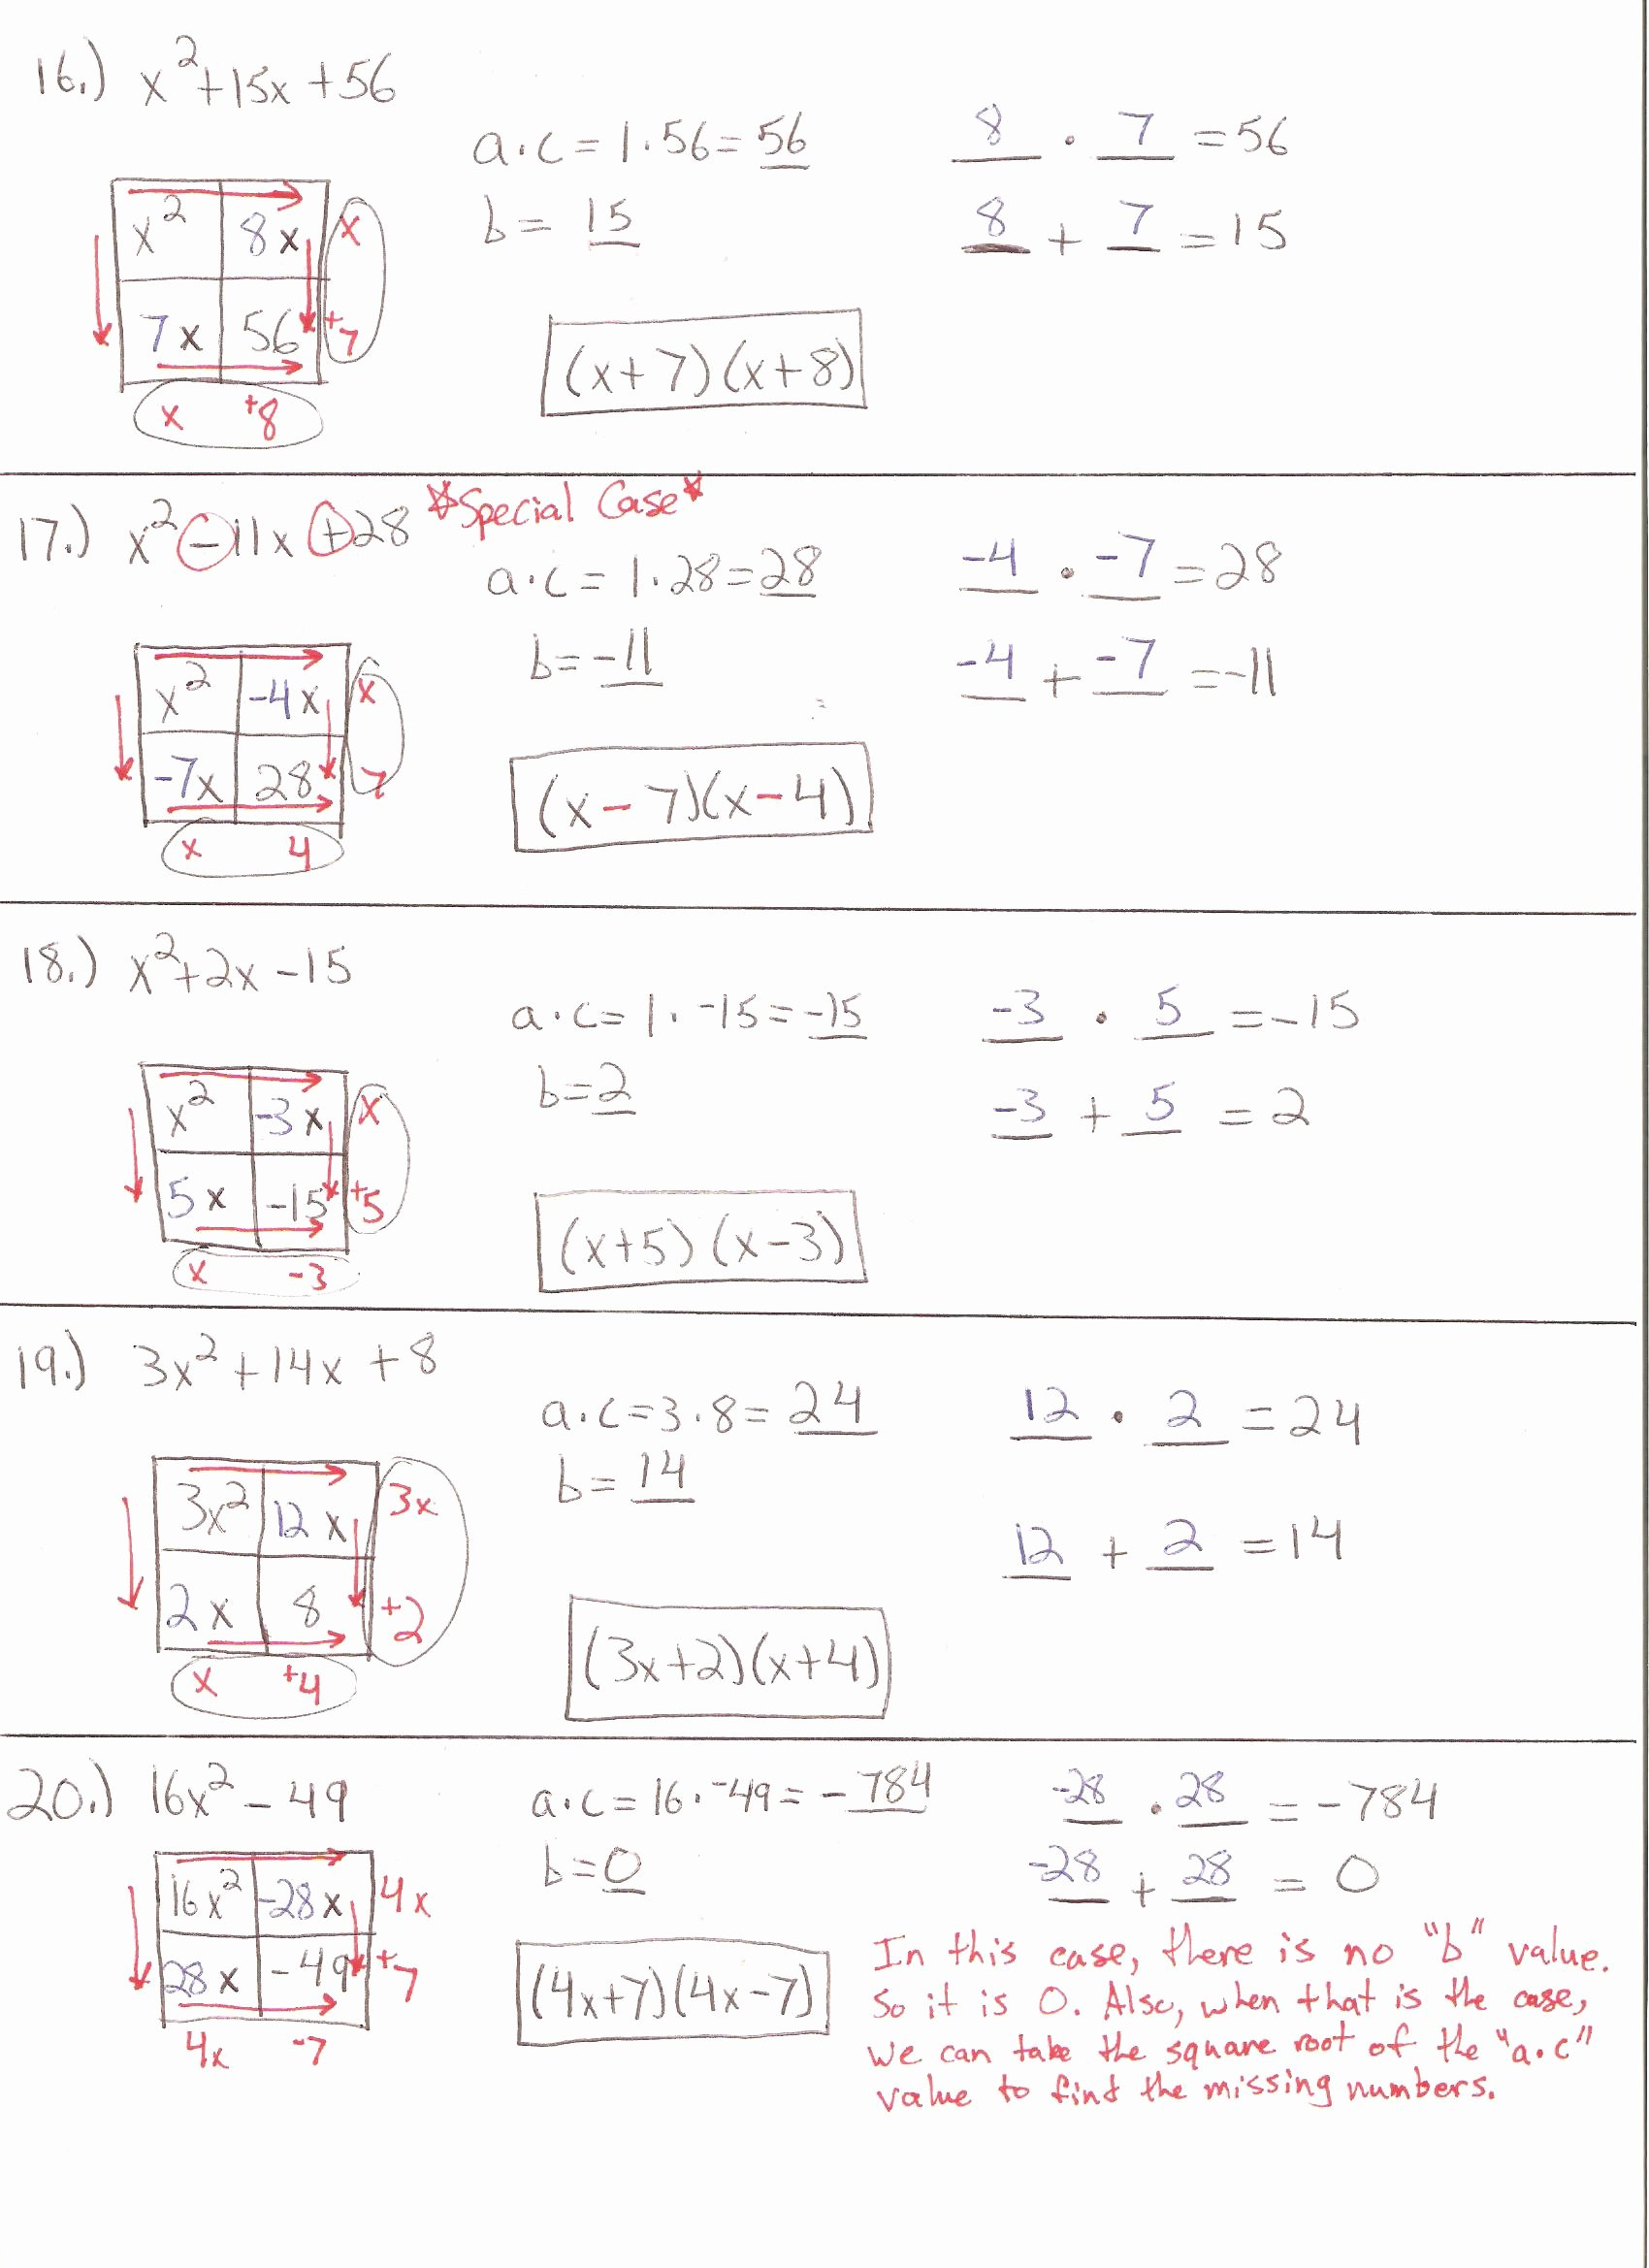 Algebra 1 Review Worksheet Inspirational Mr Wood S Algebra 2 Class – Dearborn Public Schools